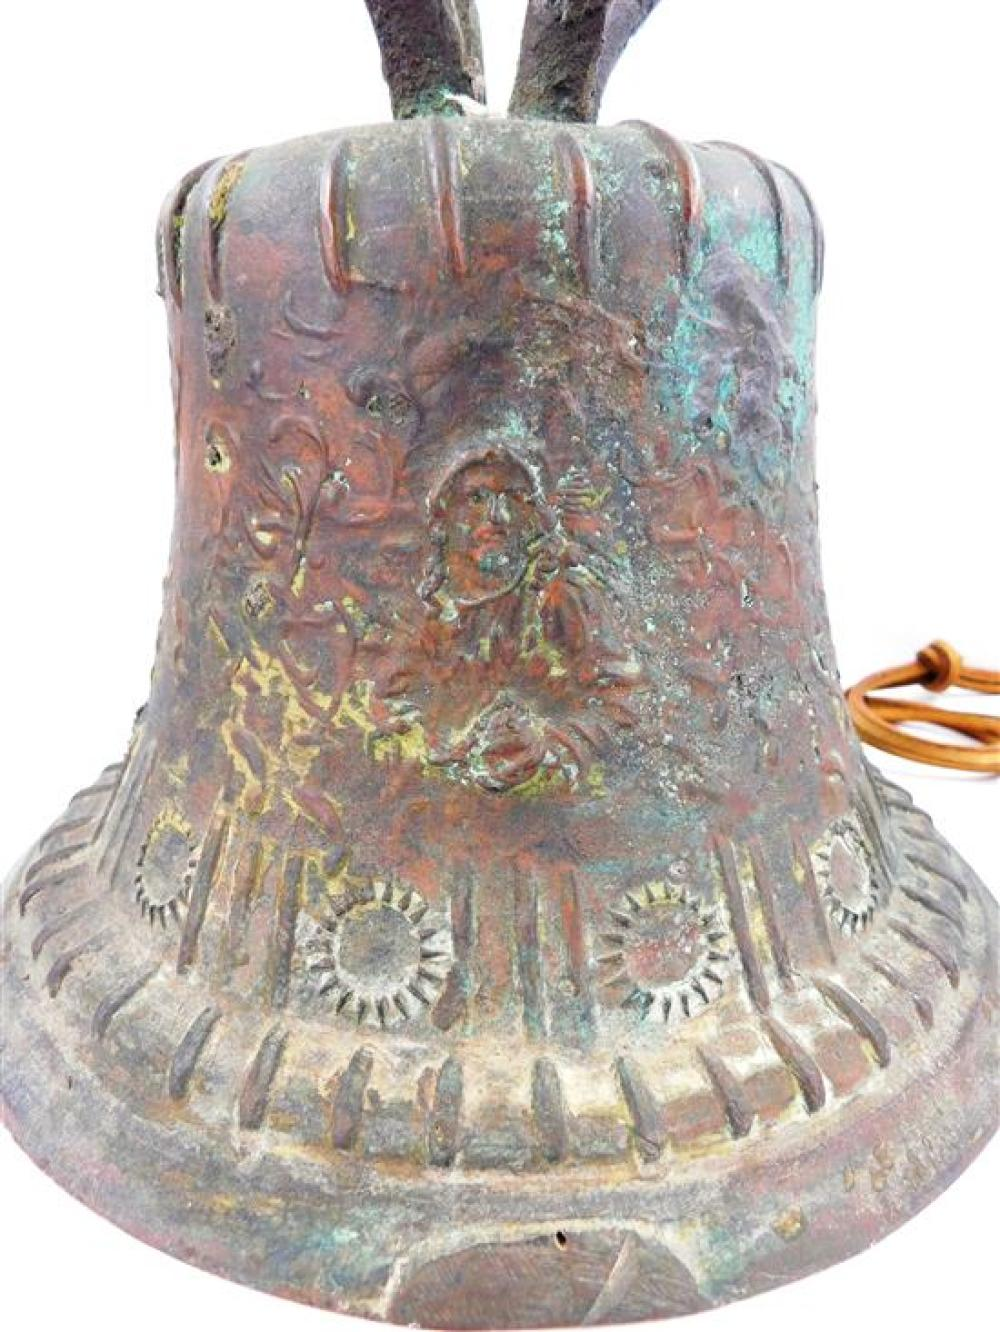 Seven bells, most bronze, probably 18th-20th C., including Continental, two Mexican mission bells, one inscribed